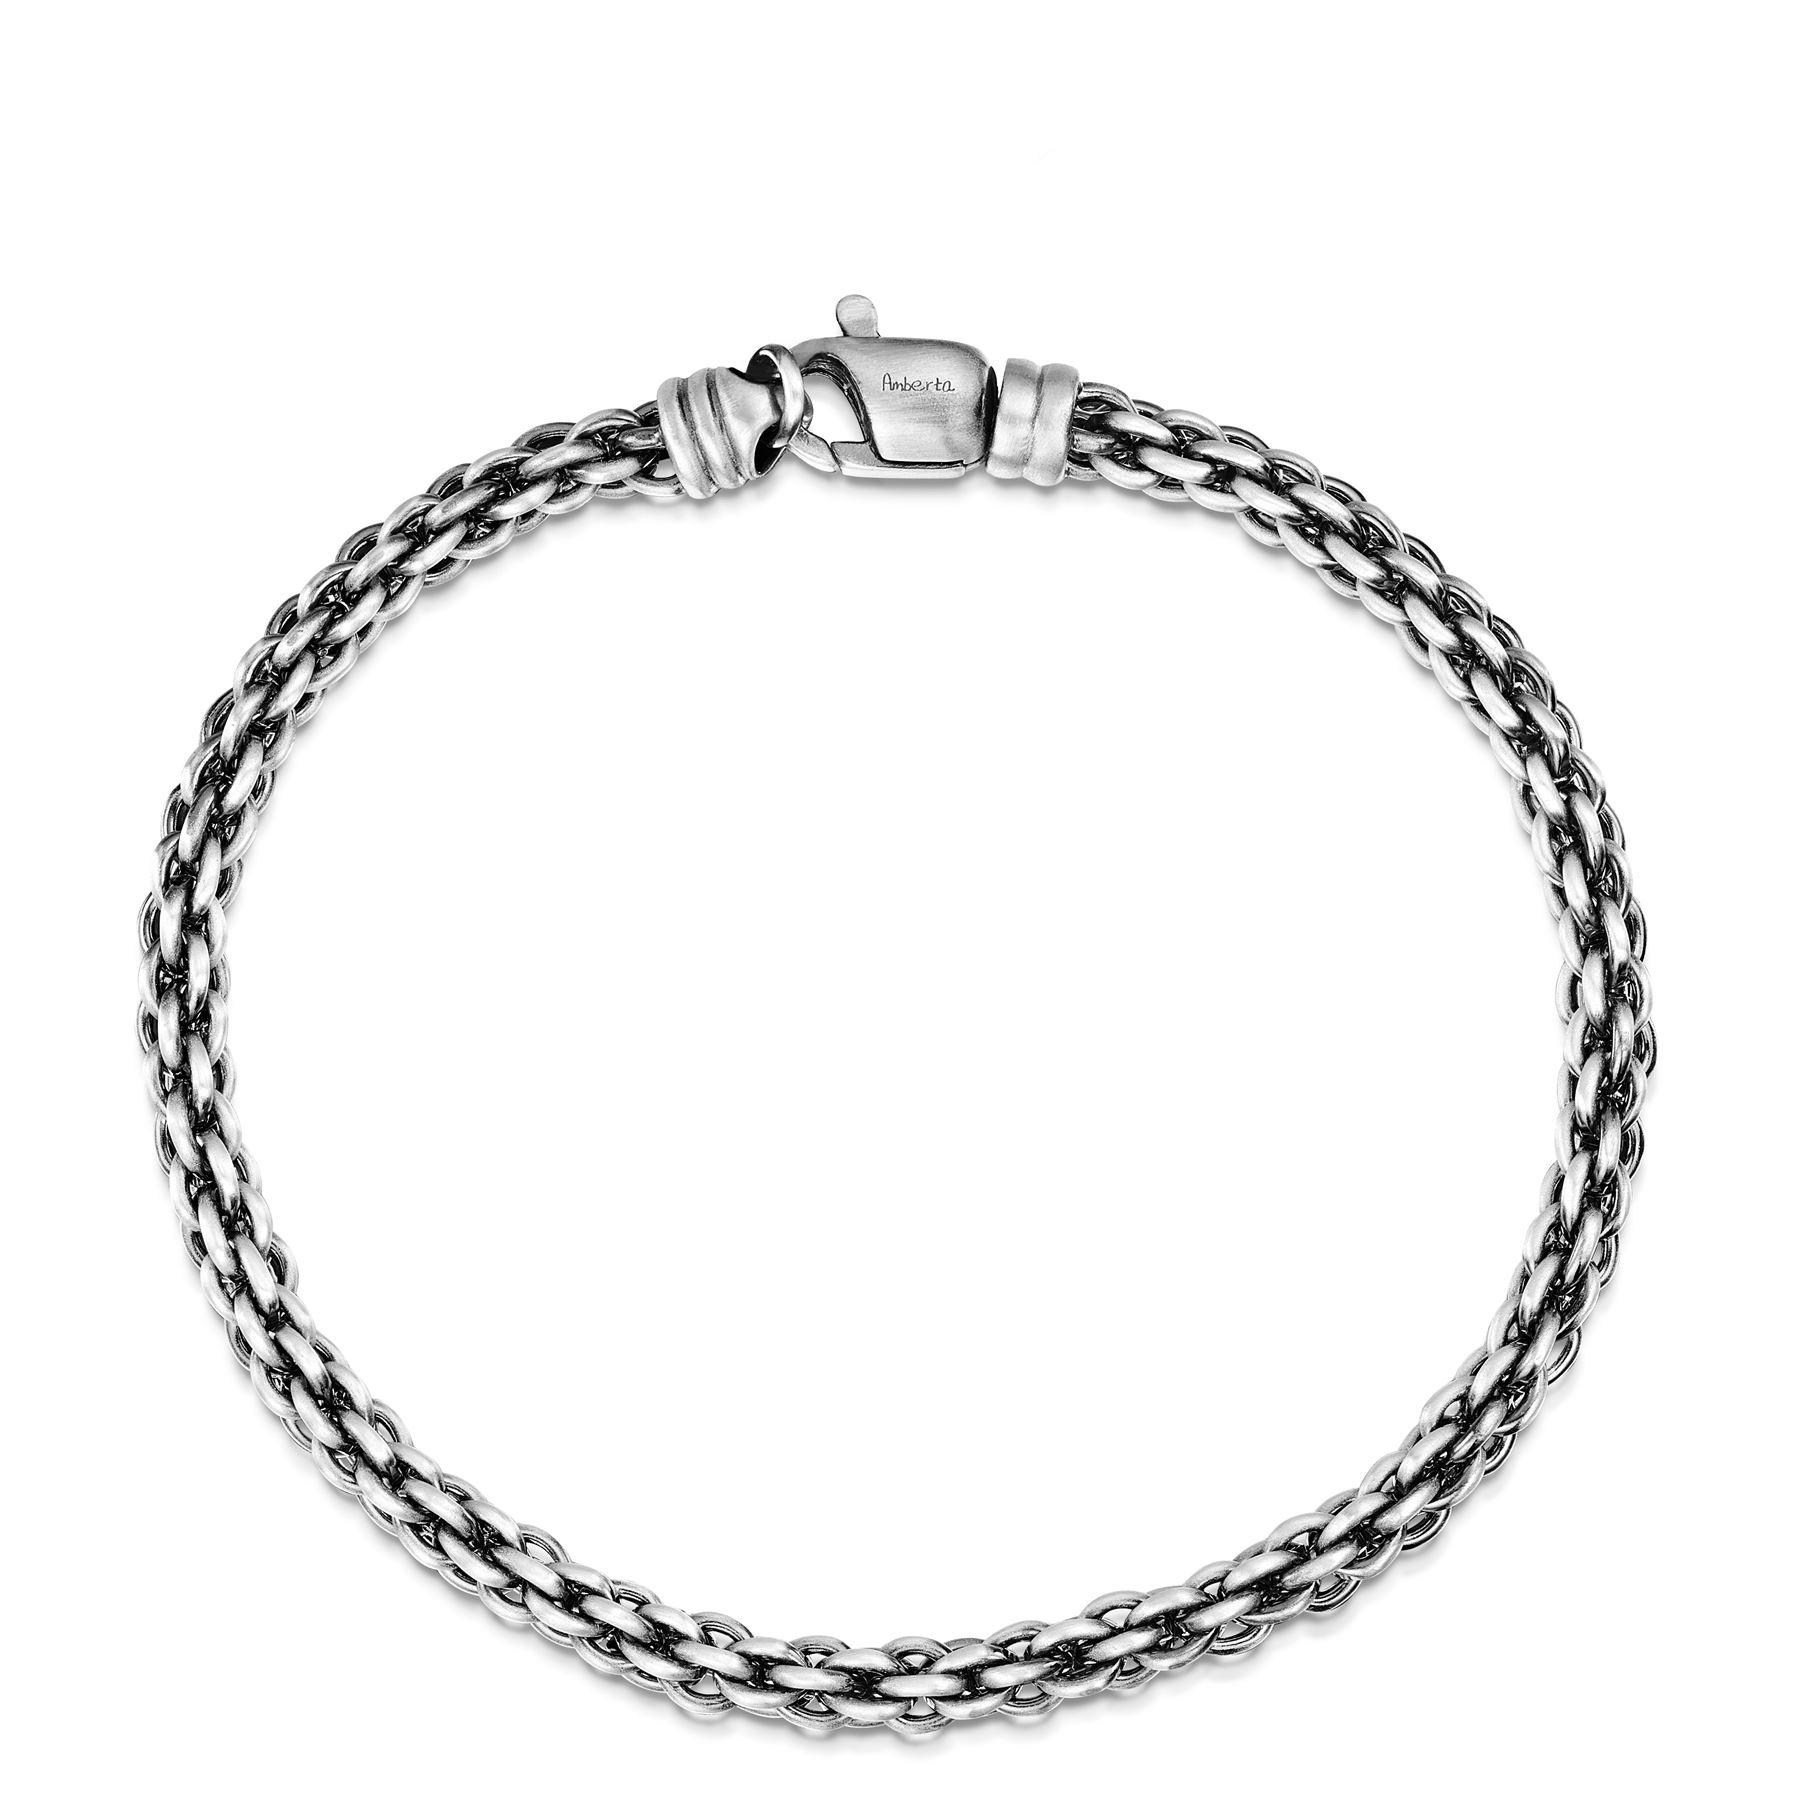 Amberta-Real-925-Sterling-Silver-Male-Arm-Chain-Chunky-Bracelet-for-Men-Italy thumbnail 8